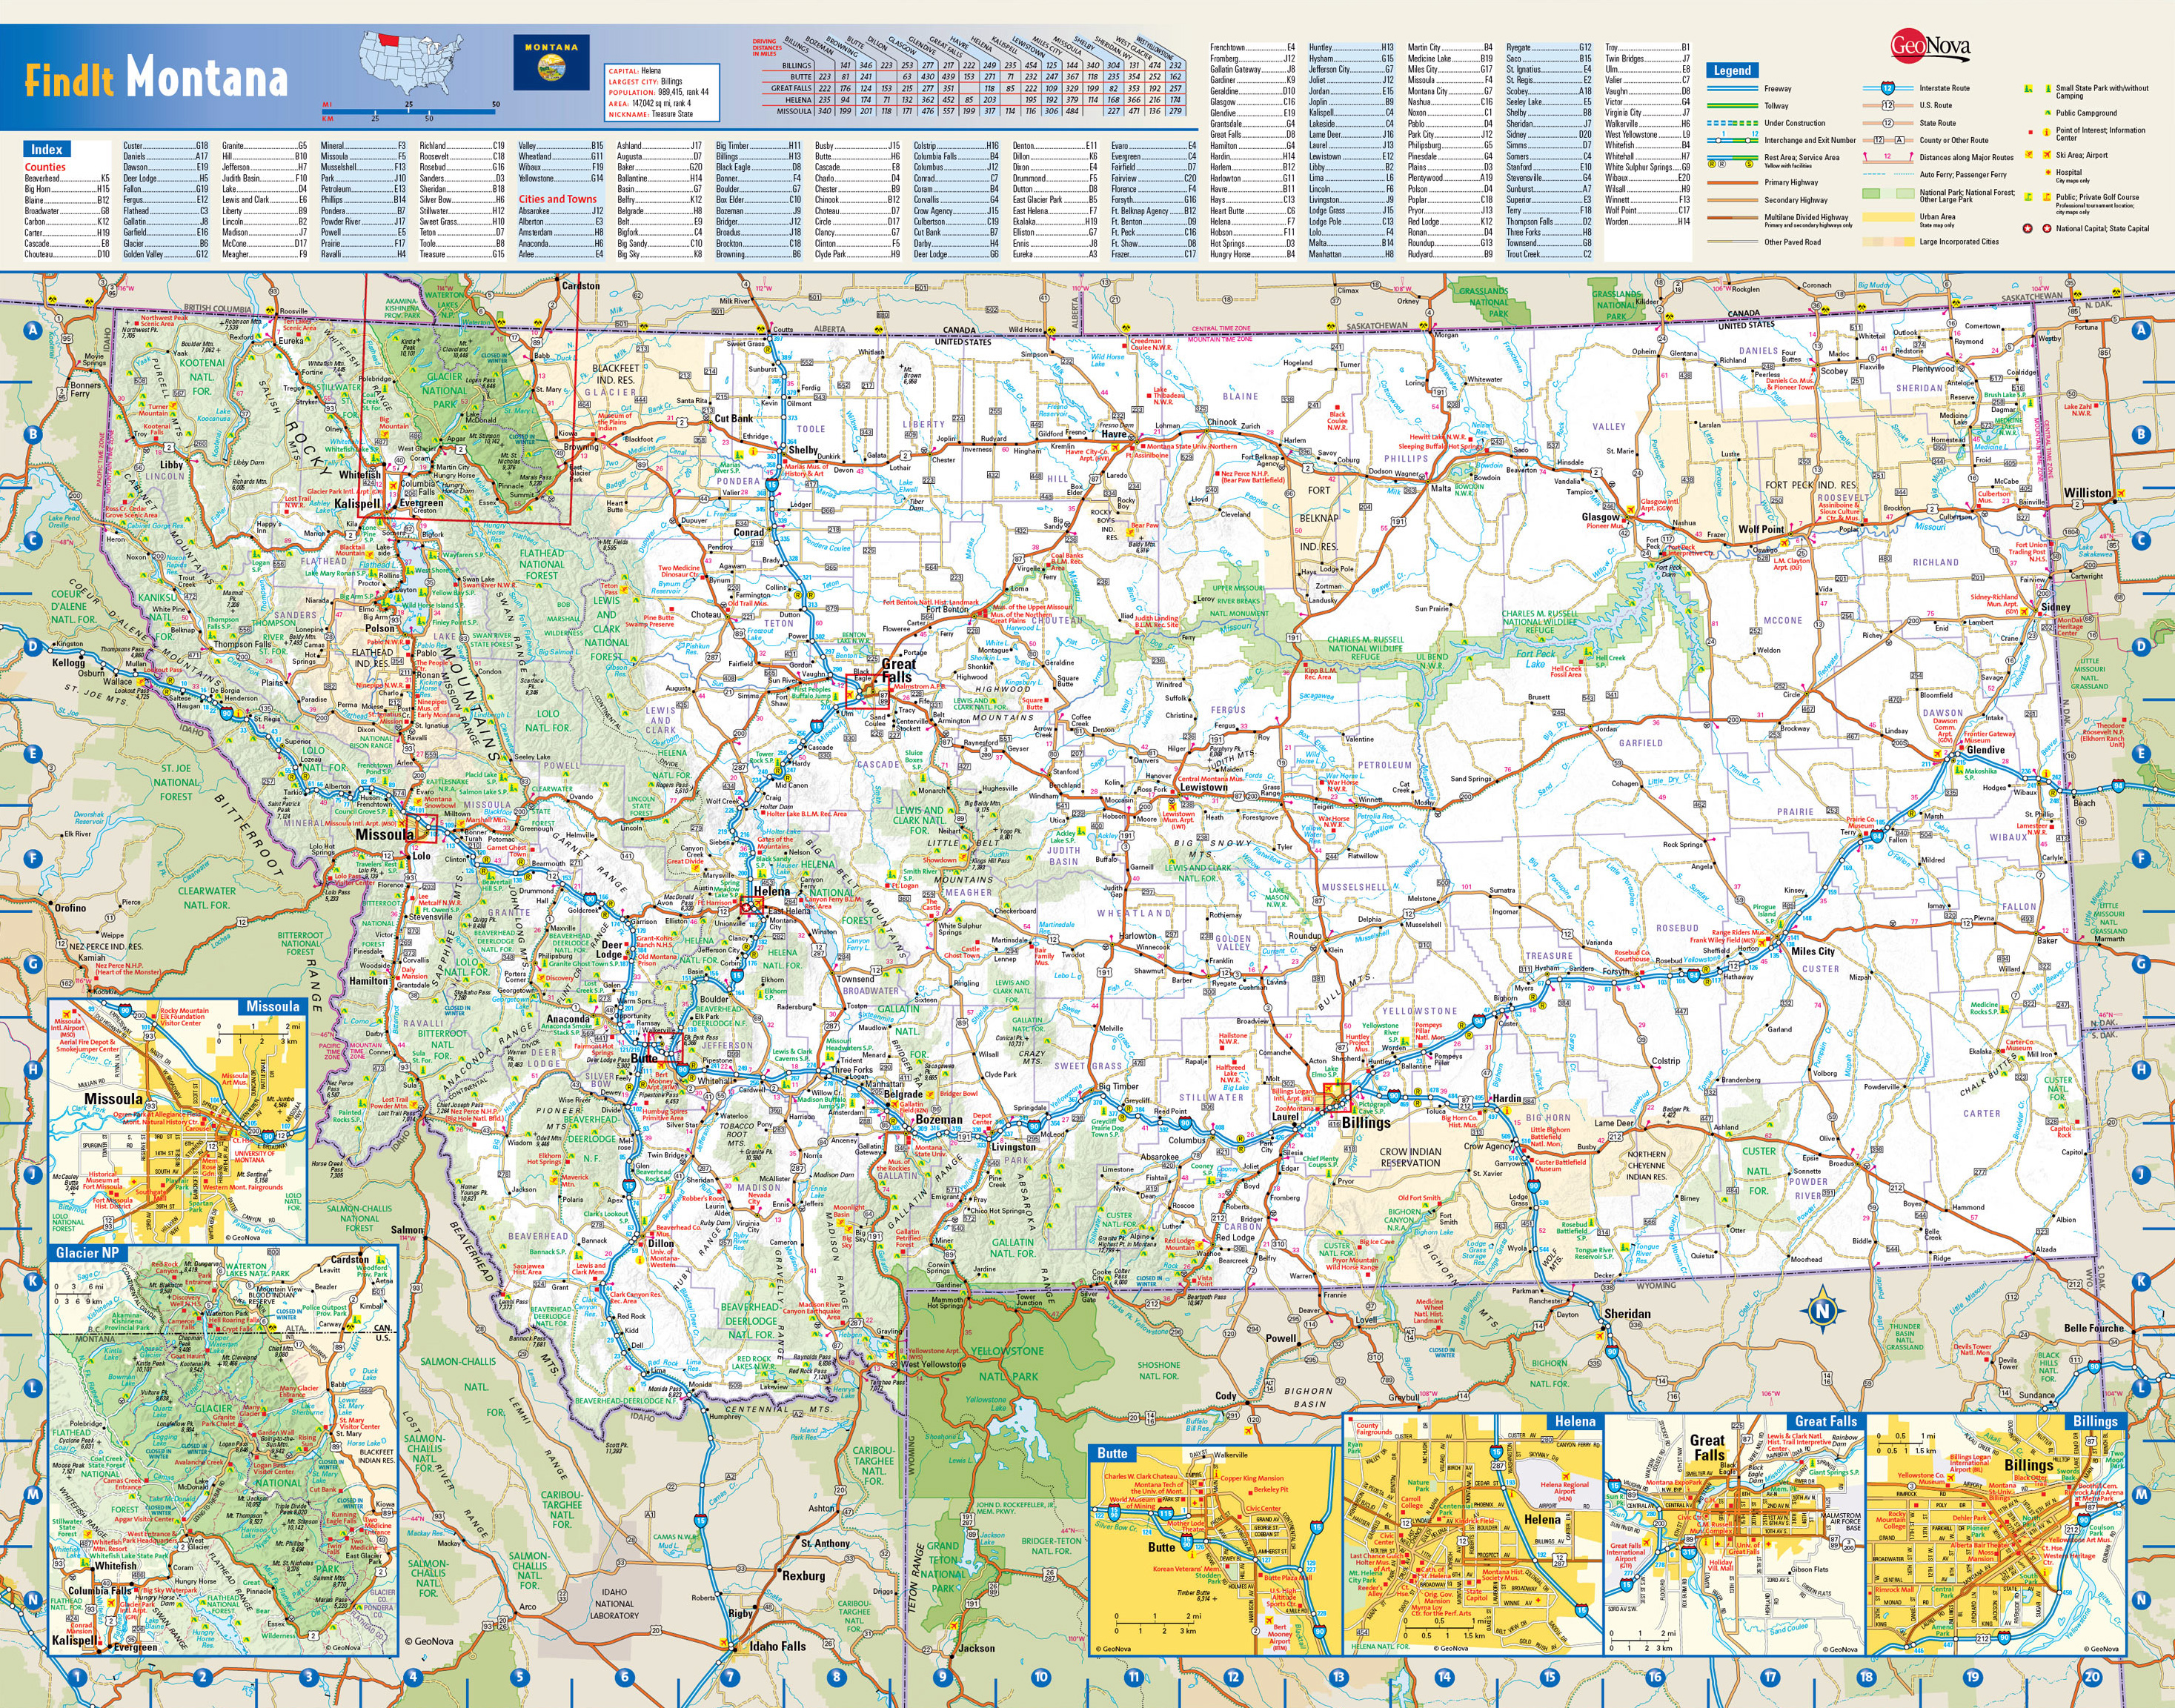 Large Detailed Roads And Highways Map Of Montana State With - Map of montana with cities